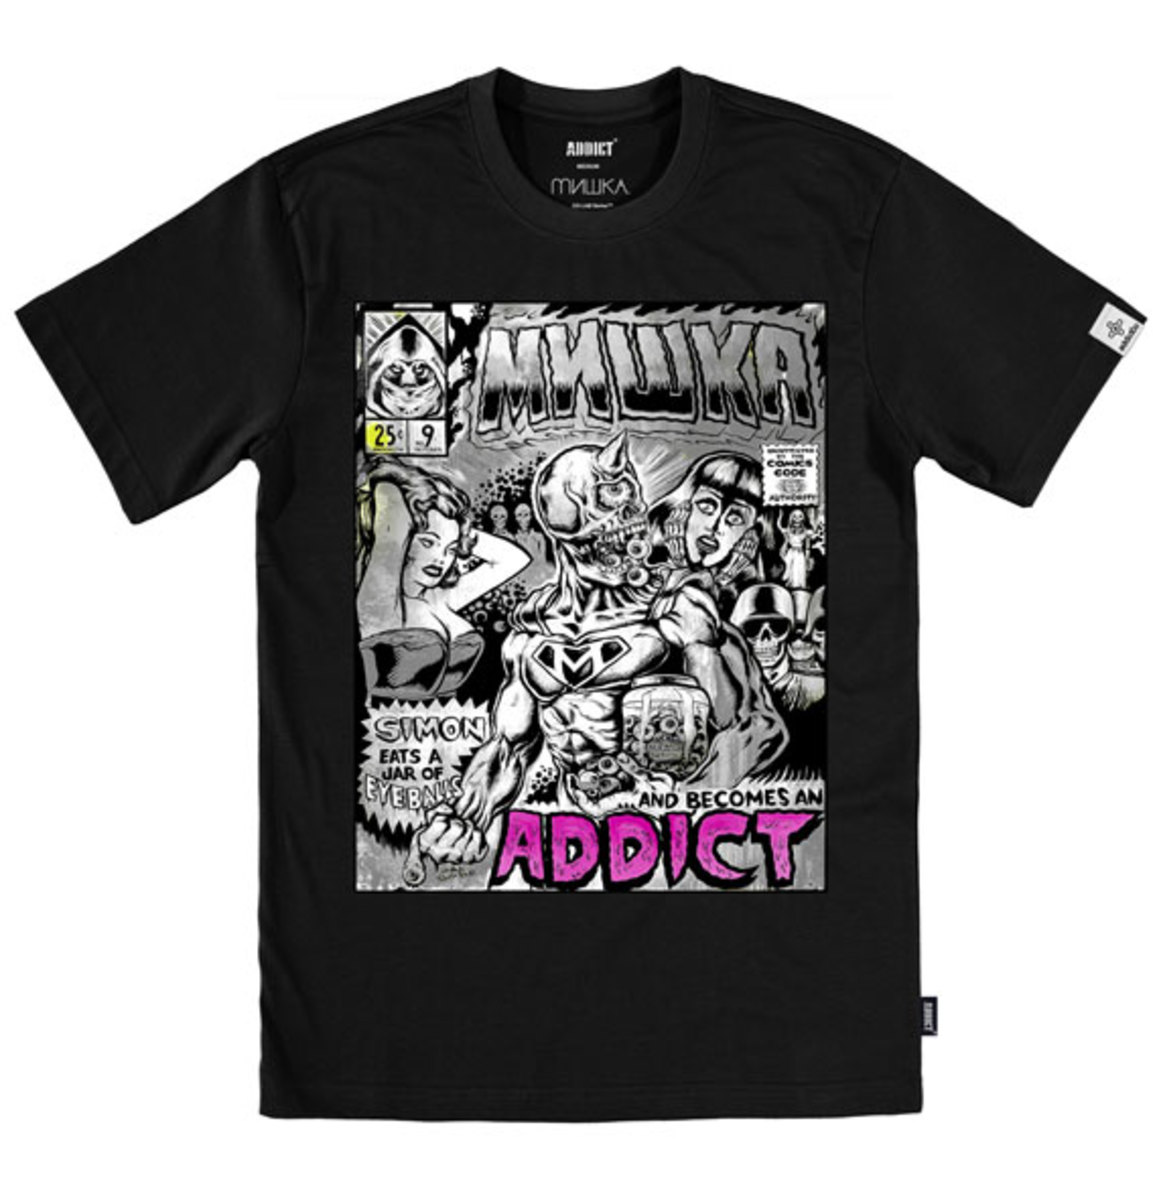 addict-mishka-nyc-co-lab-series-09